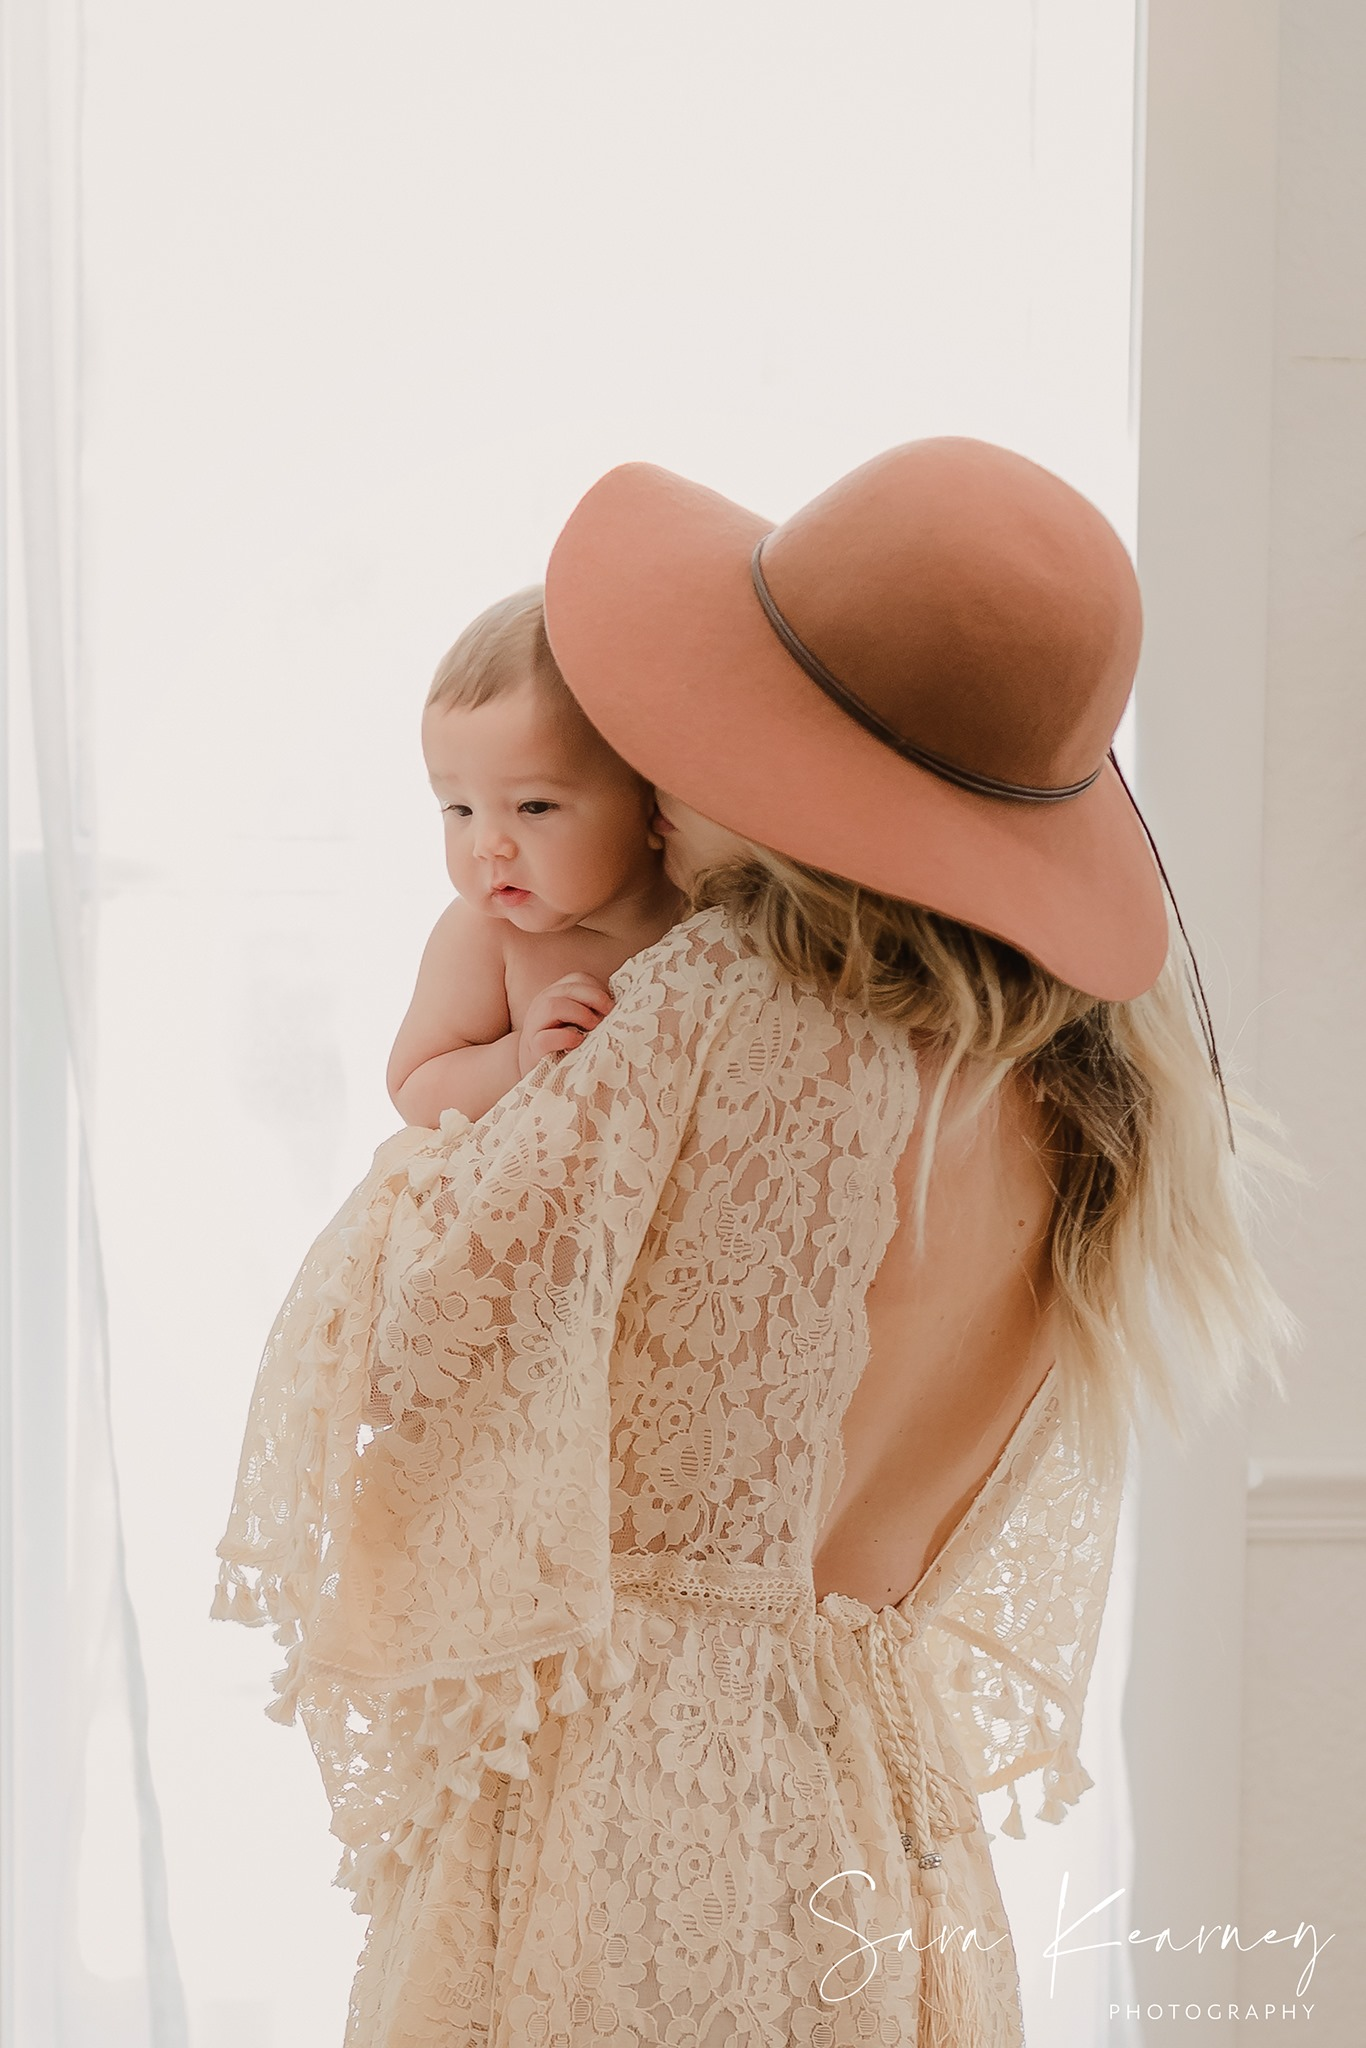 Boho Photo Shoot!! Mommy photoshoot | Sara Kearney Orlando Photographer 5